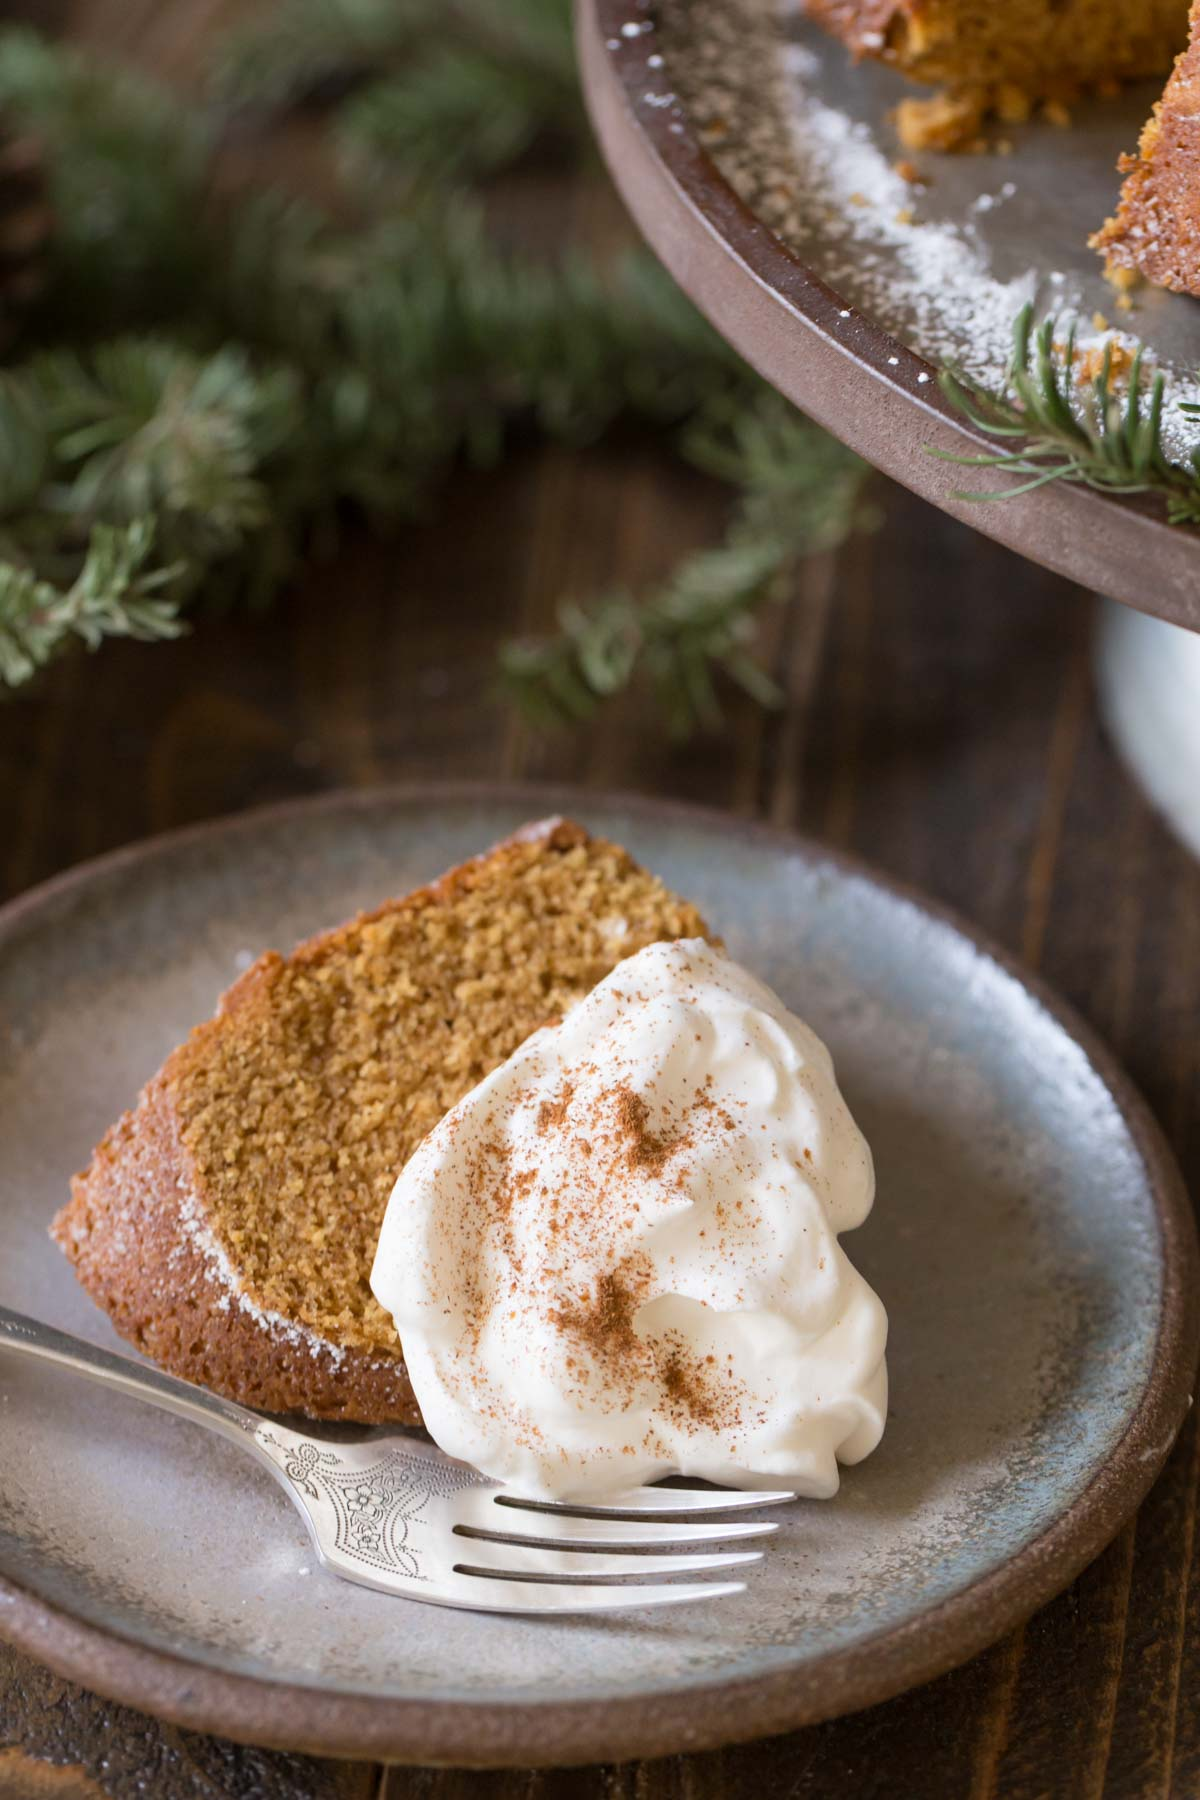 A slice of Gingerbread Bundt Cake topped with whipped cream, on a plate with a fork.